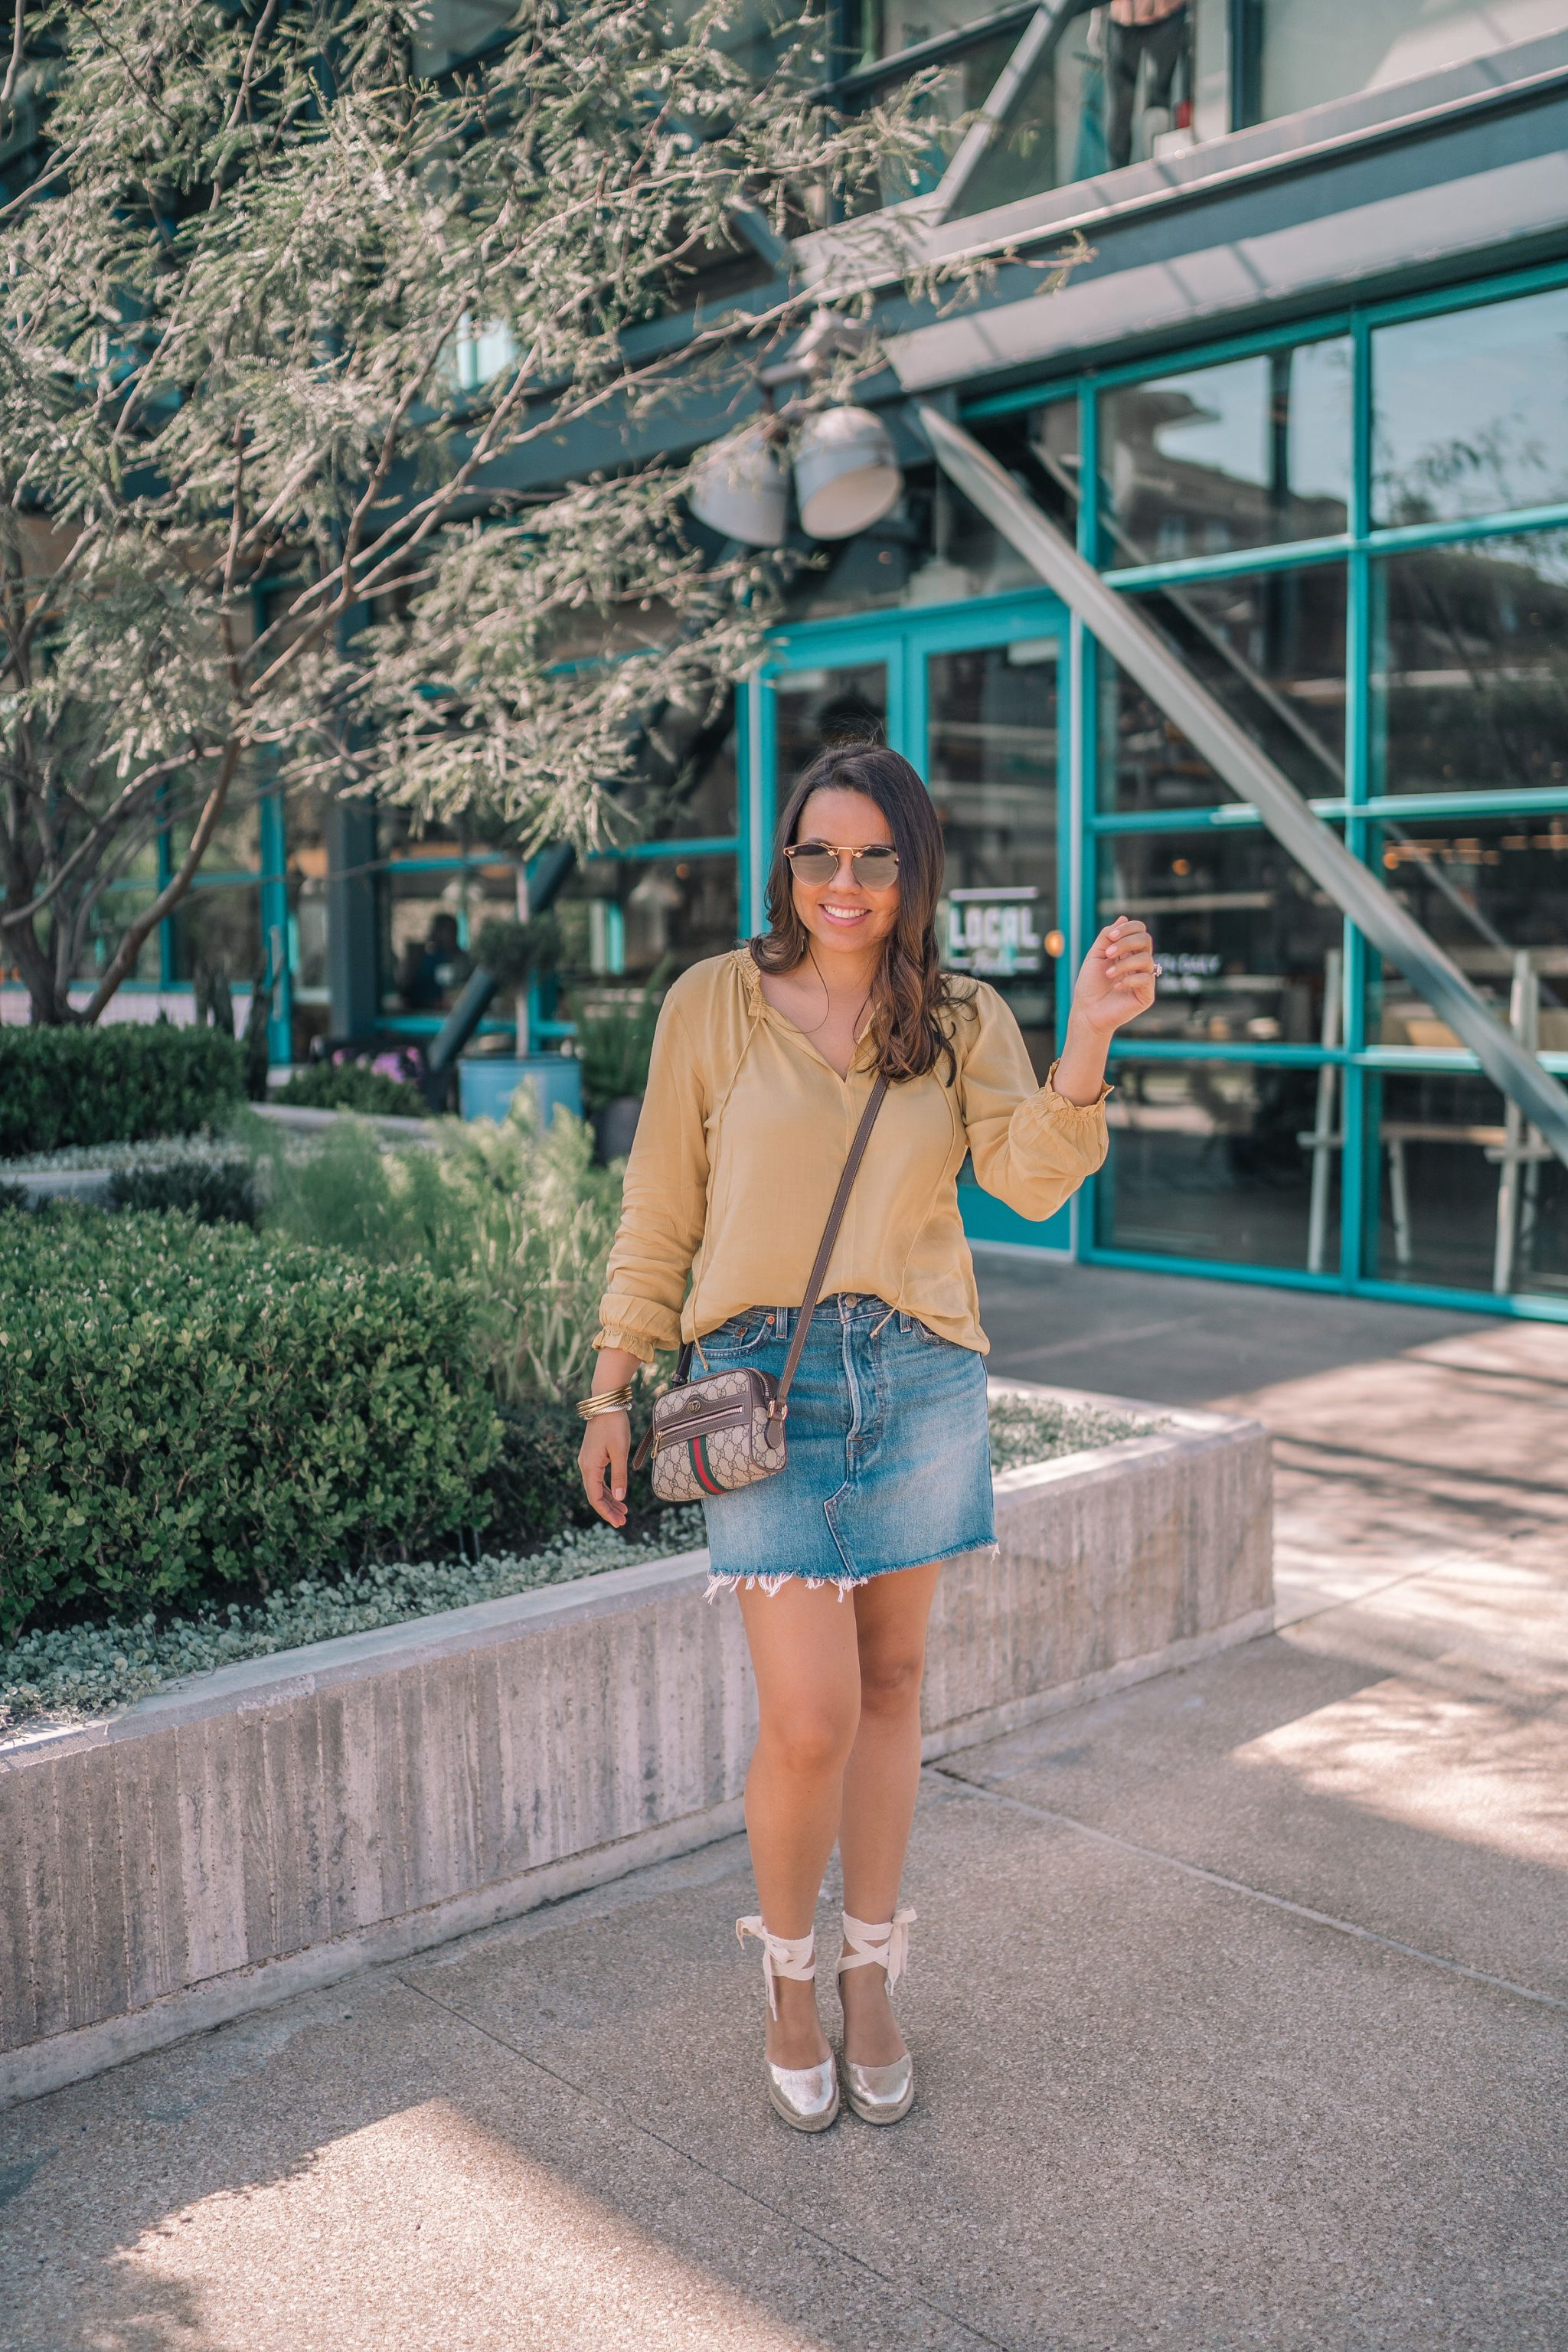 lace-up Soludos espadrille wedges, spring outfit ideas